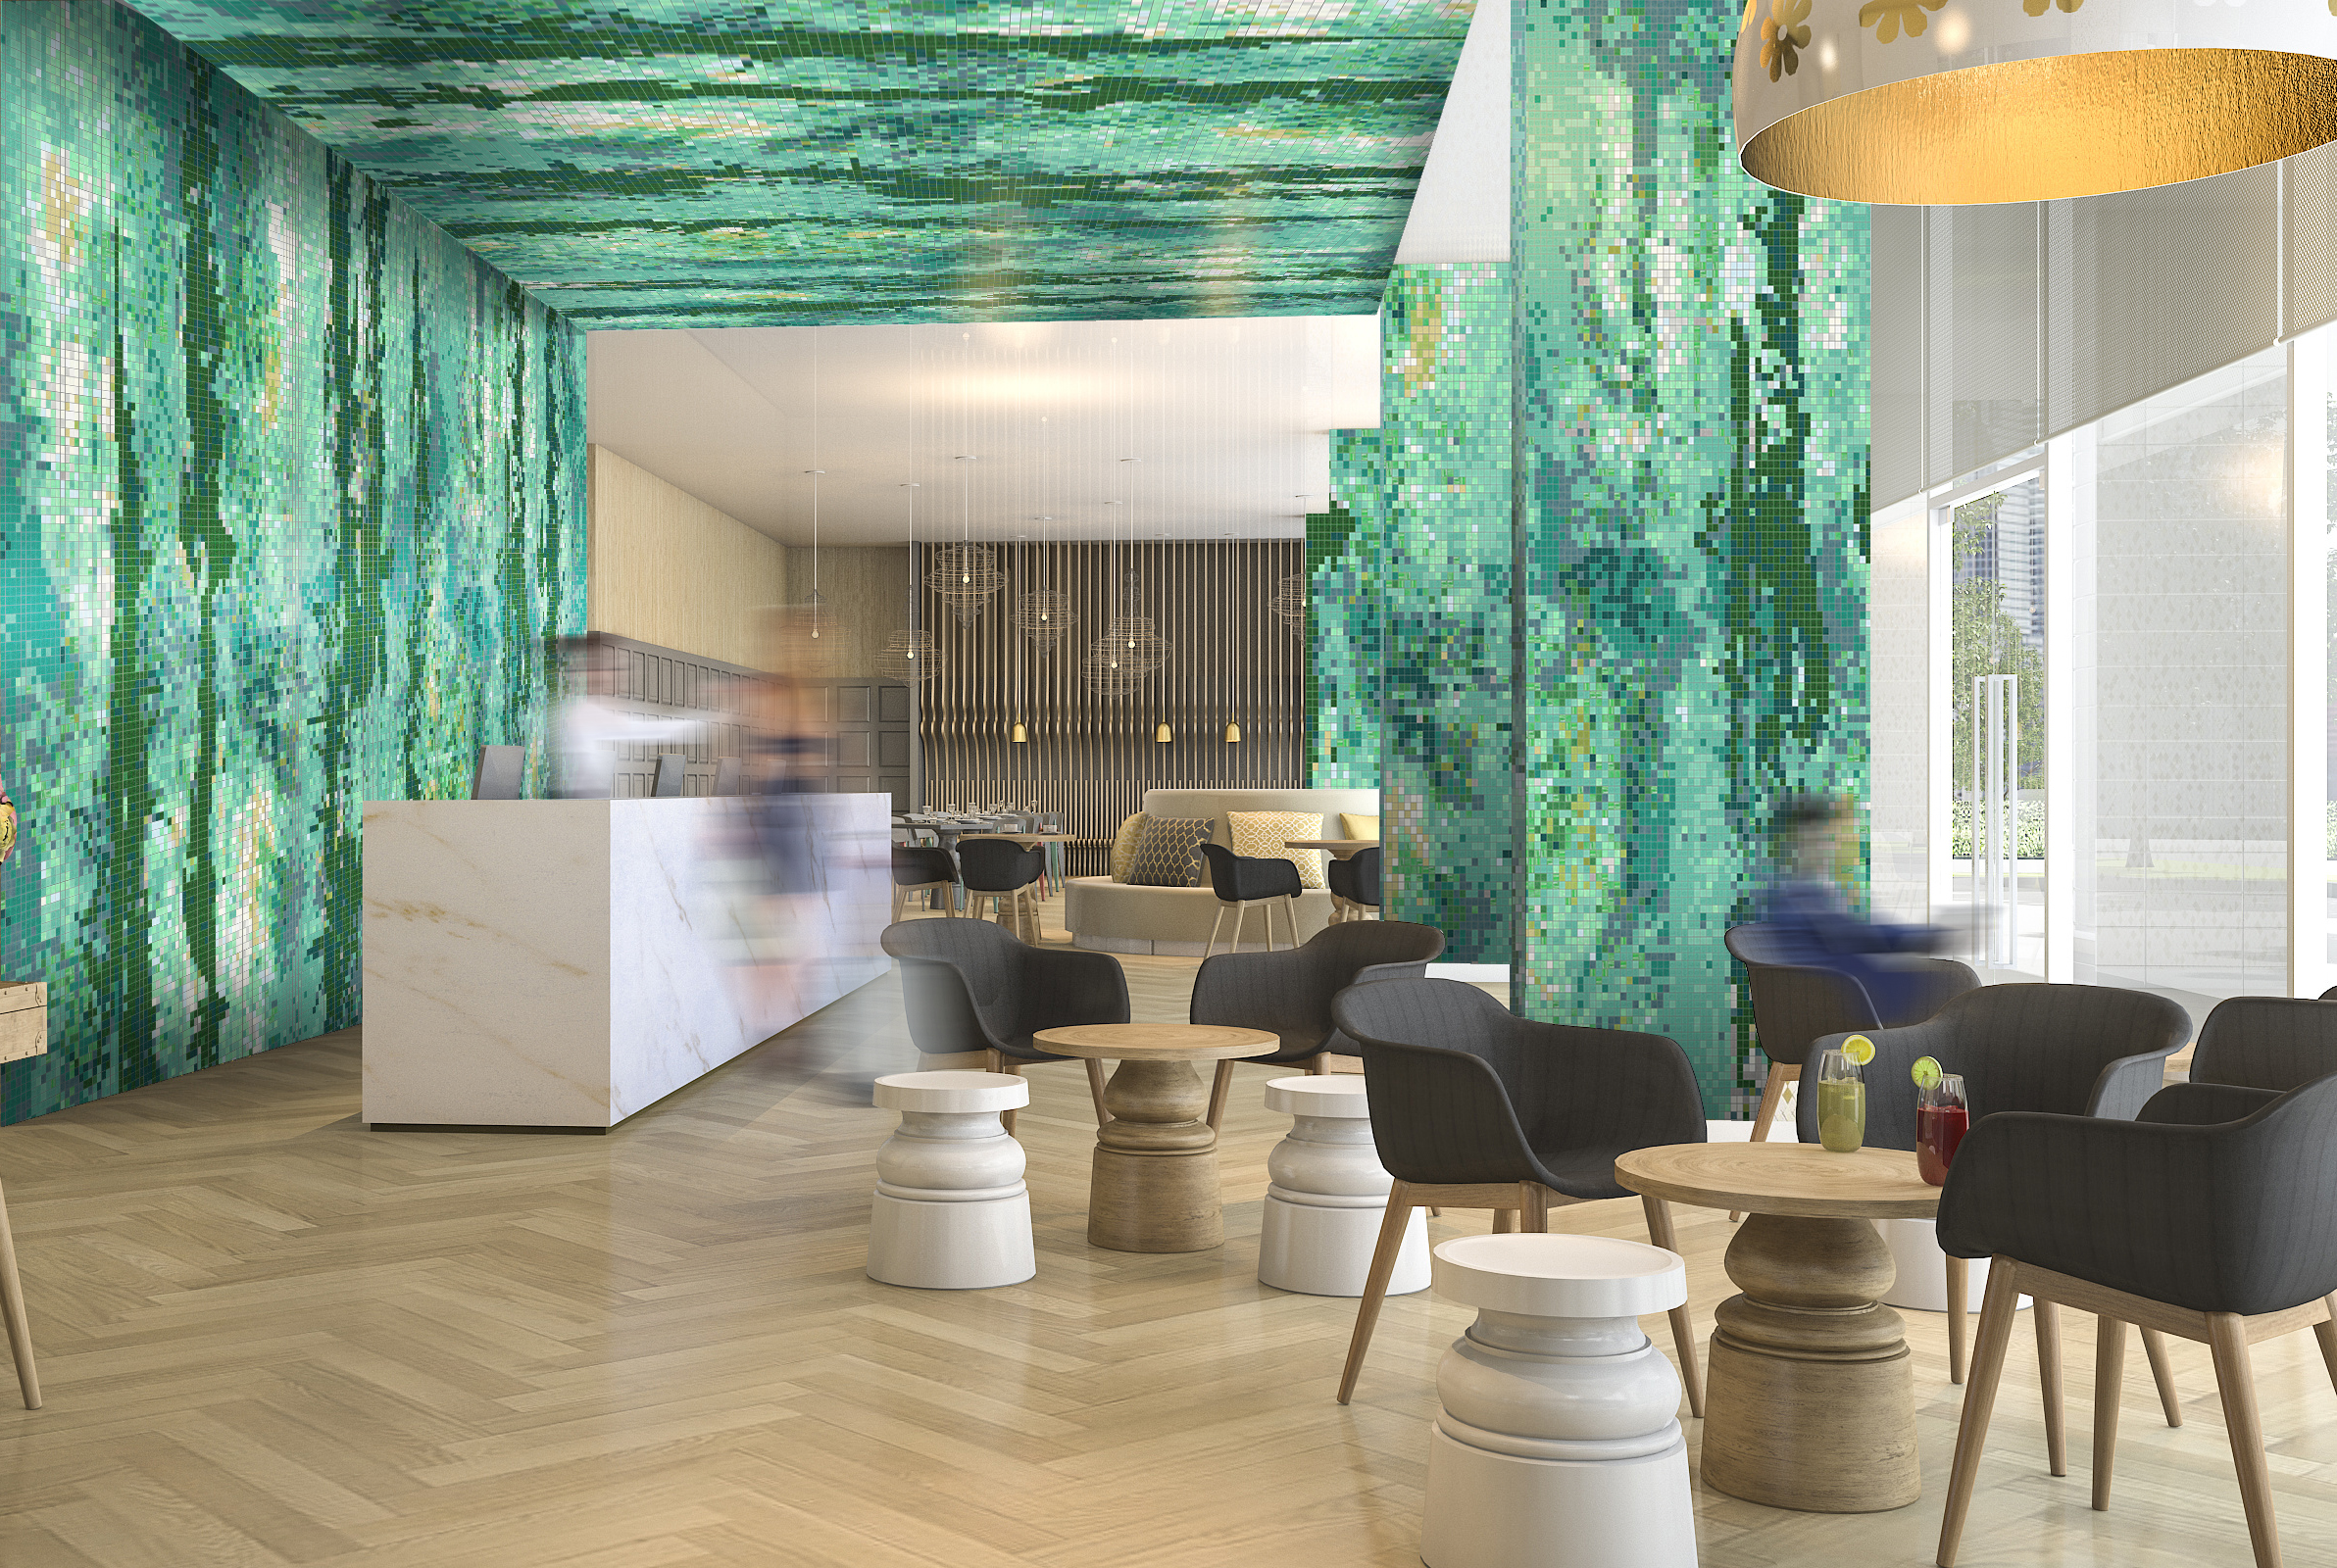 Tile Design Is Inspired By Water Artaic